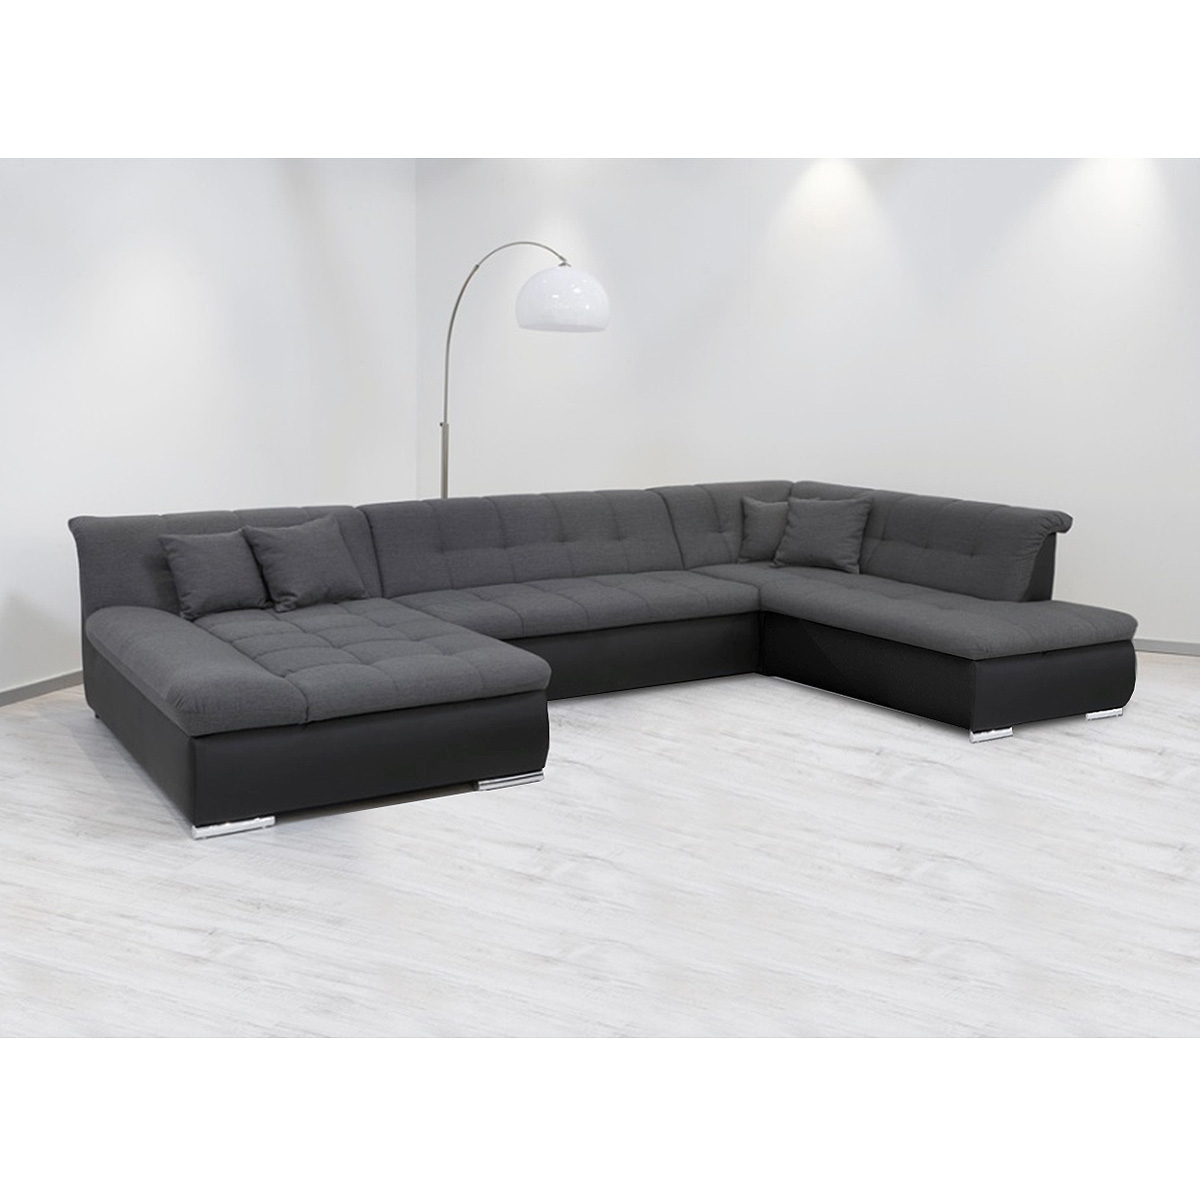 wohnlandschaft alabama ecksofa sofa in schwarz und grau. Black Bedroom Furniture Sets. Home Design Ideas